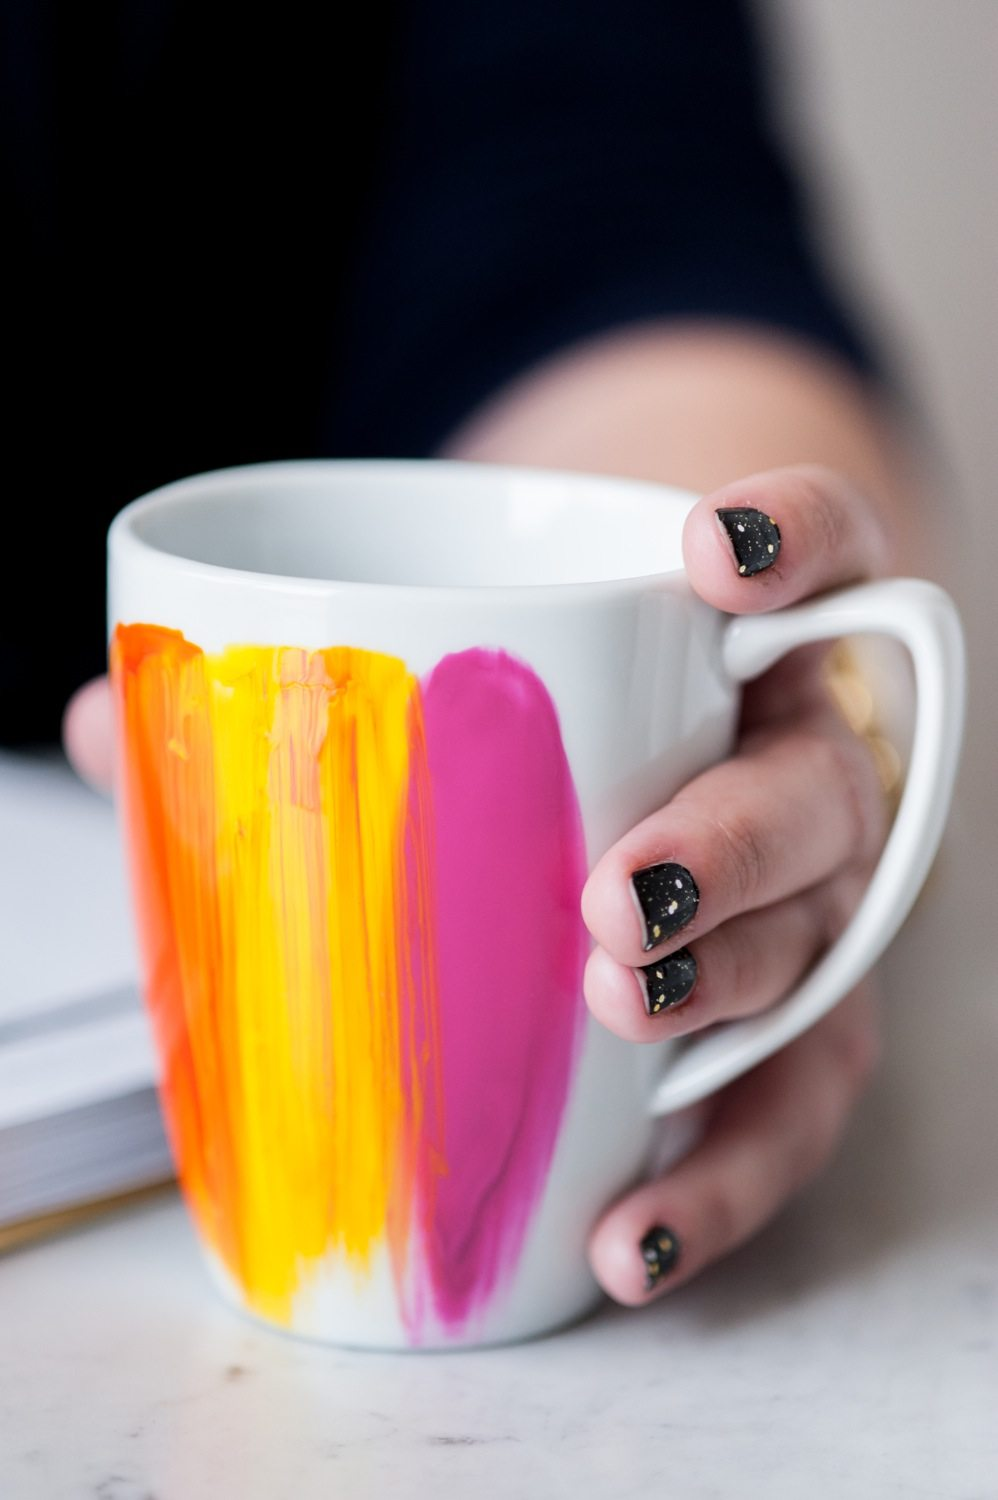 DIY Abstract Painted Mug by @cydconverse